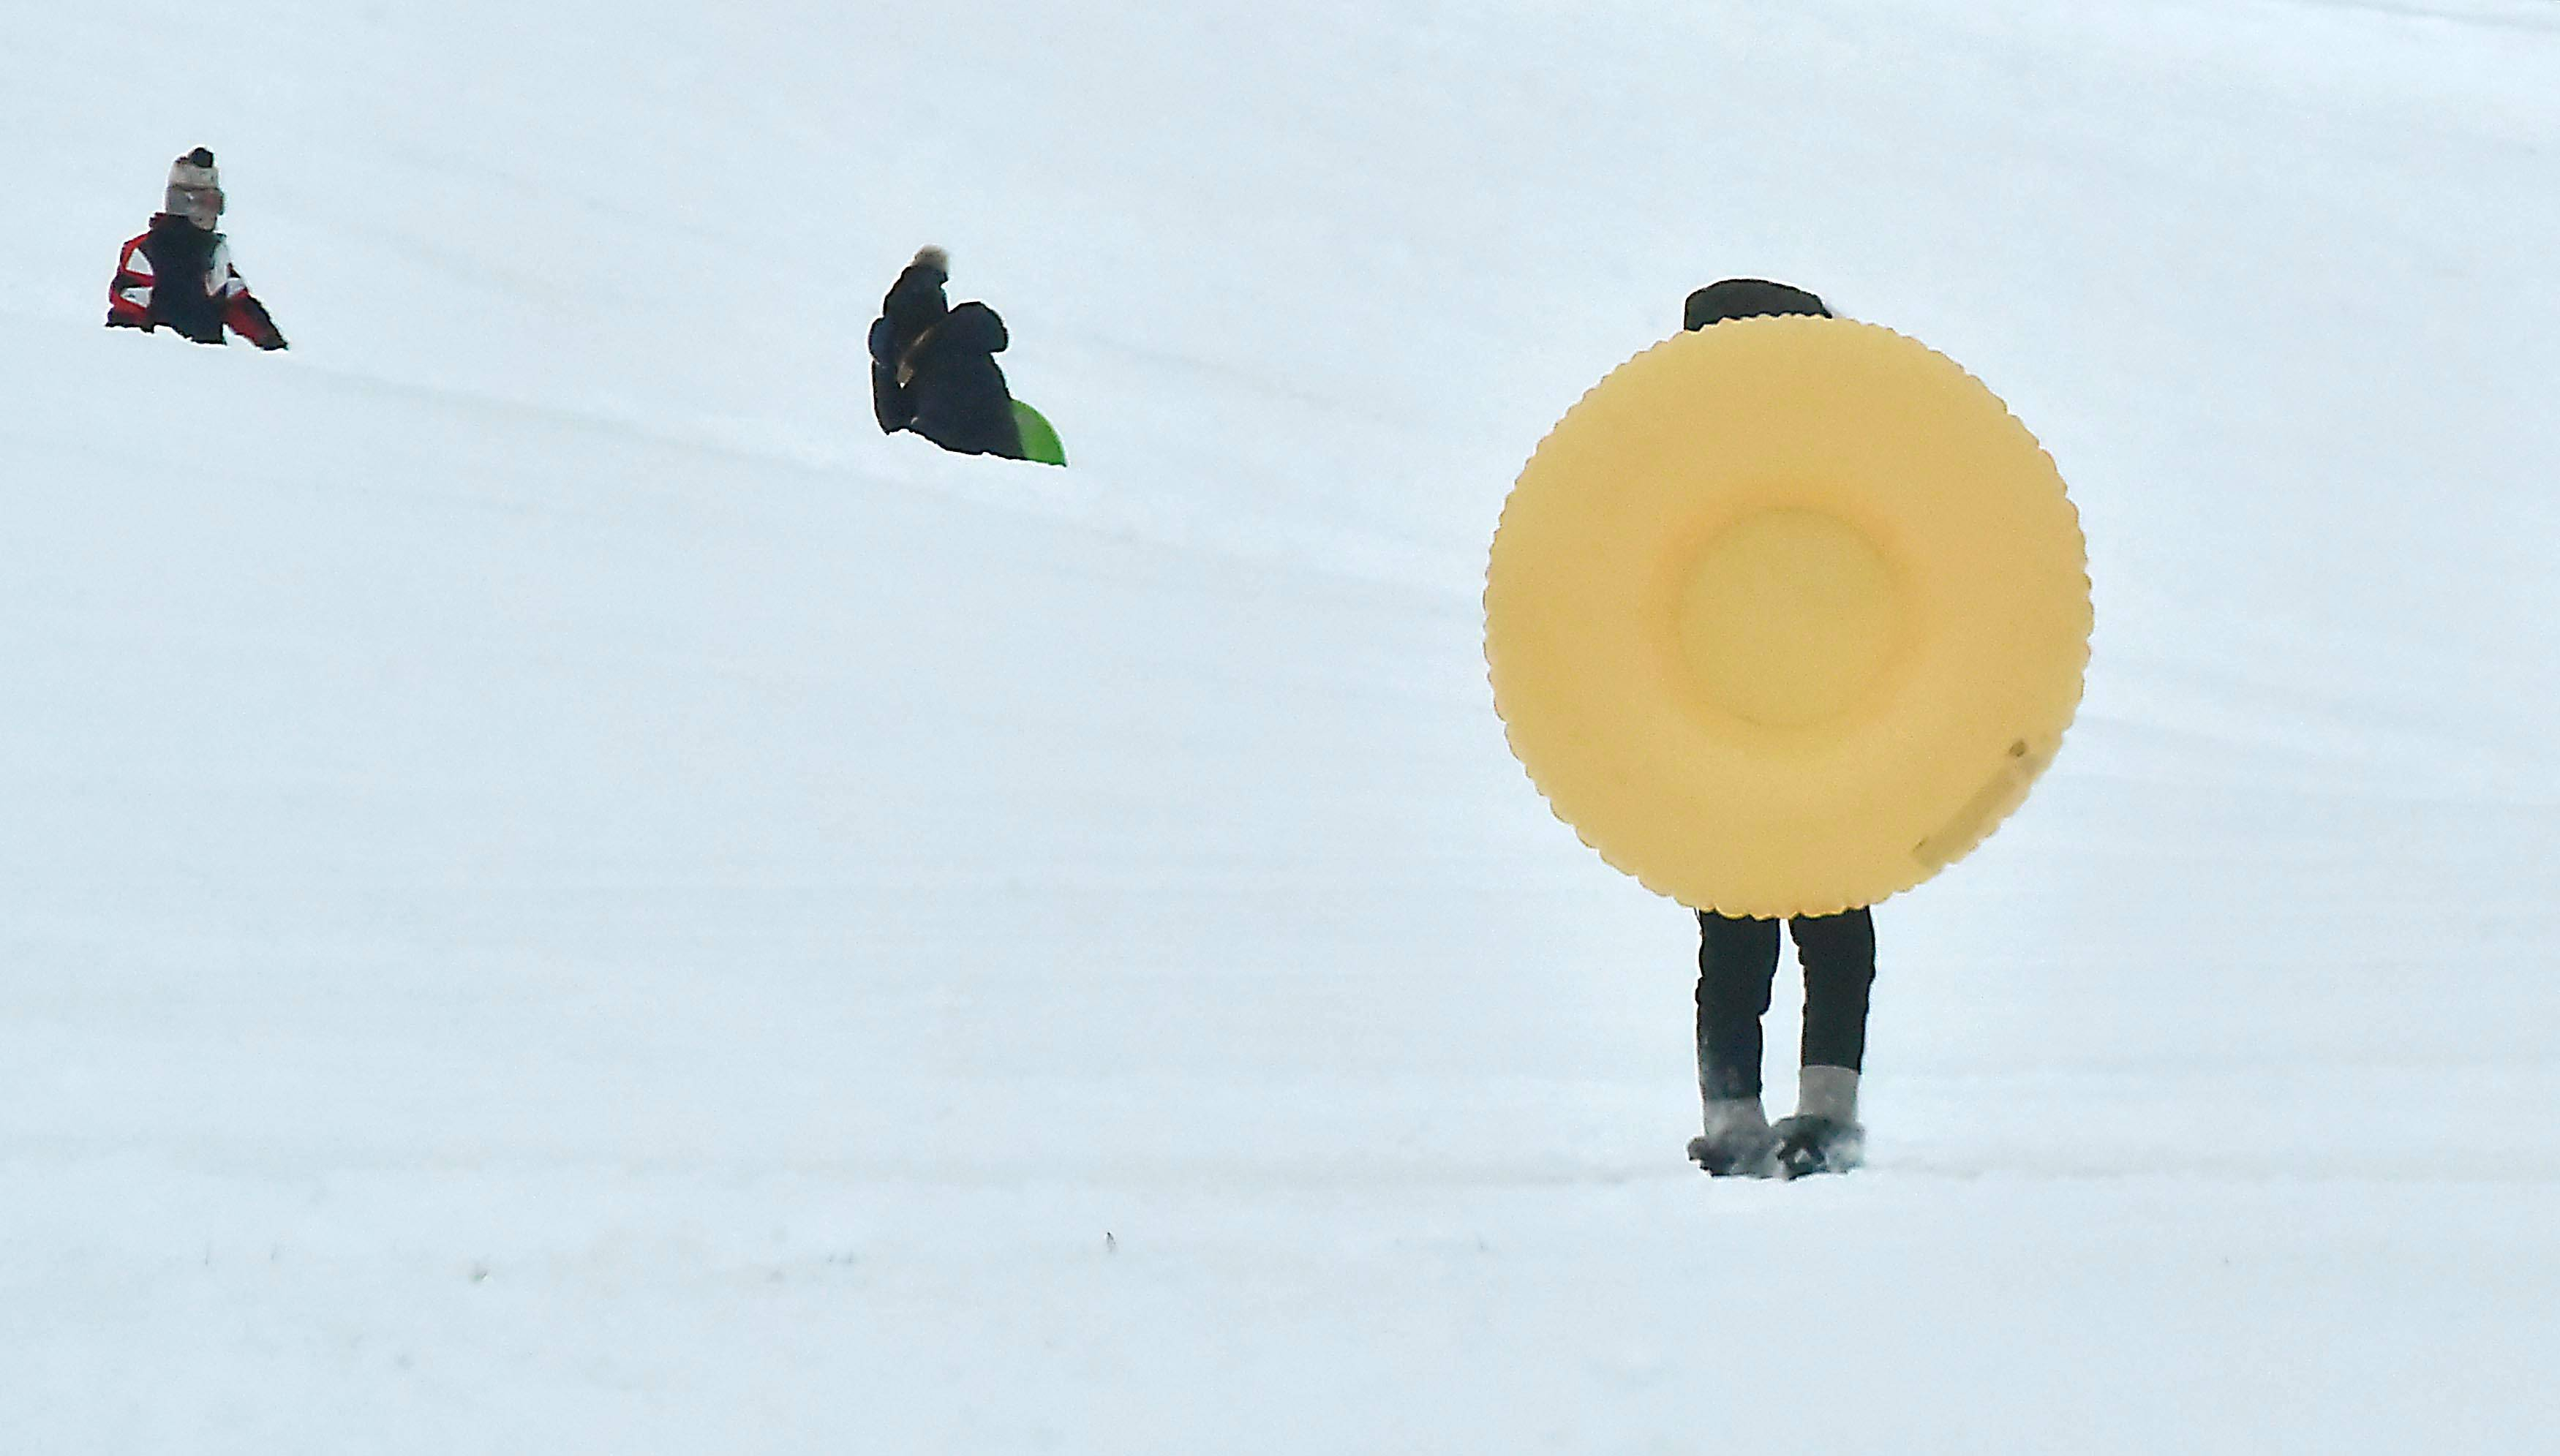 Carpenter Park in Island Lake was a popular place for sledding Saturday.